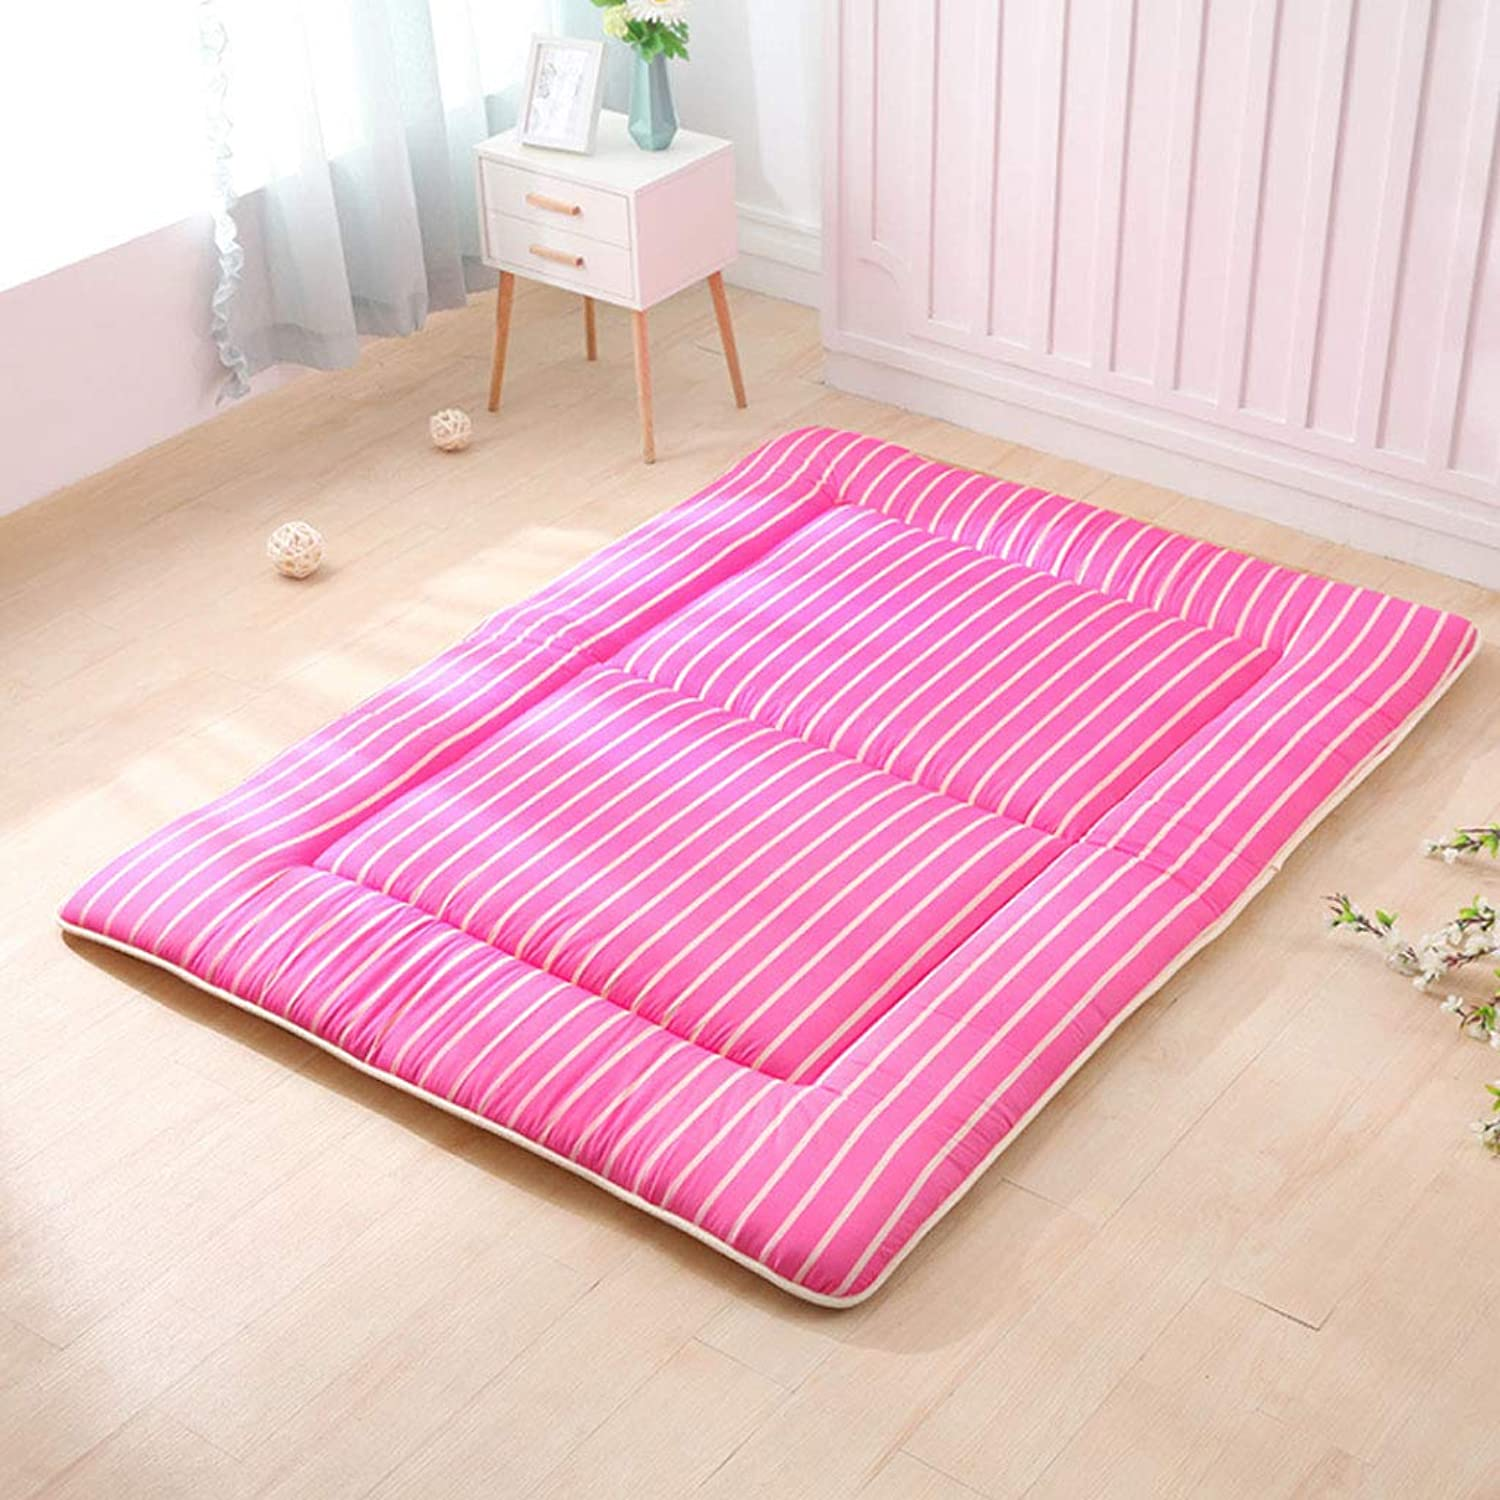 Double Mattress, Tatami Mat Quilted Student Dormitory Non-Slip Futon Mattress Foldable Sleeping Mat (color   2 , Size   180X200cm)